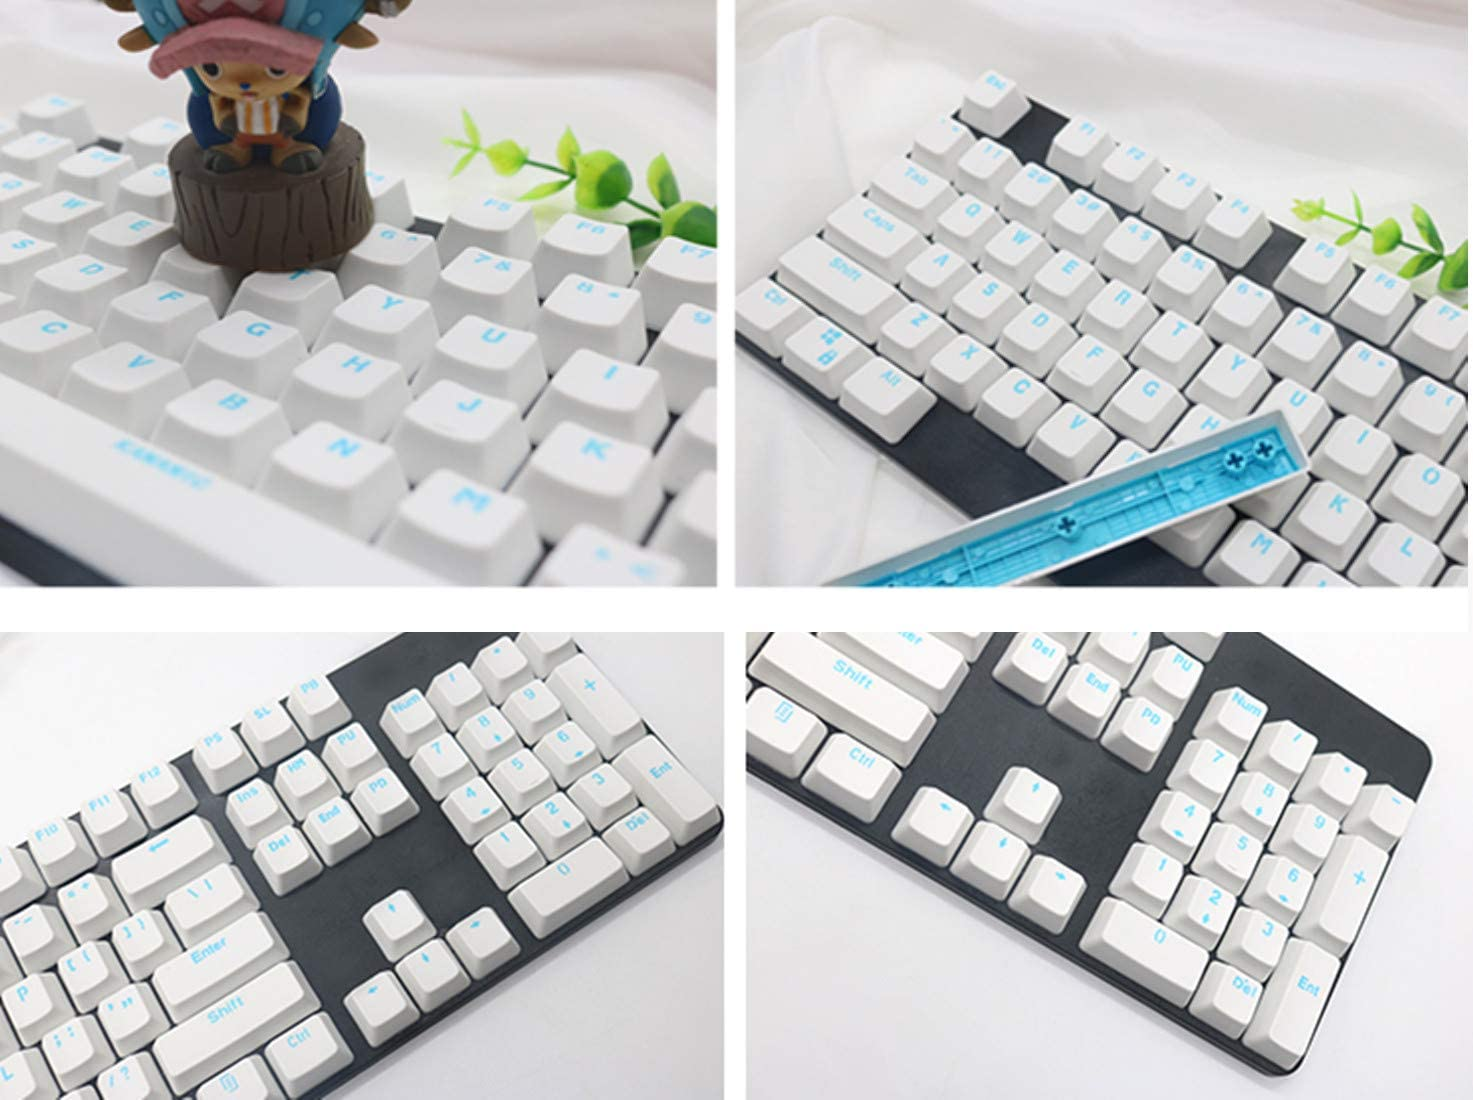 104//108 Keys PBT Keycap Top Printed Doubleshot Keyset OEM Profile for for 61//87//104//108 Cherry MX Switches Mechanical Keyboard White Green 108 Keys